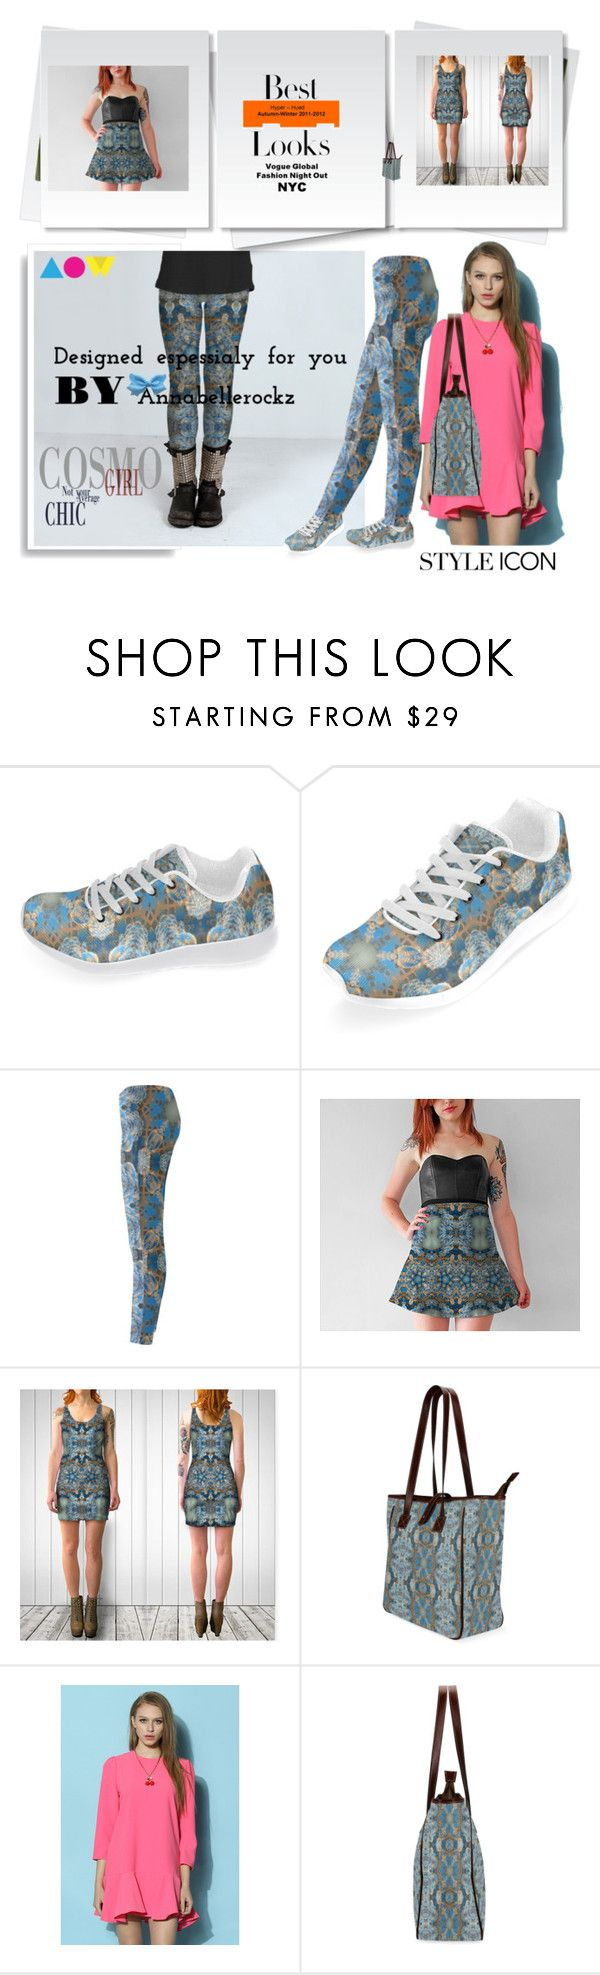 Streetwear look by Annabellerockz by annabelle-h-ringen-nymo on Polyvore featuring Chicwish, MML, women's clothing, women's fashion, women, female, woman, misses, juniors and annabellerockz